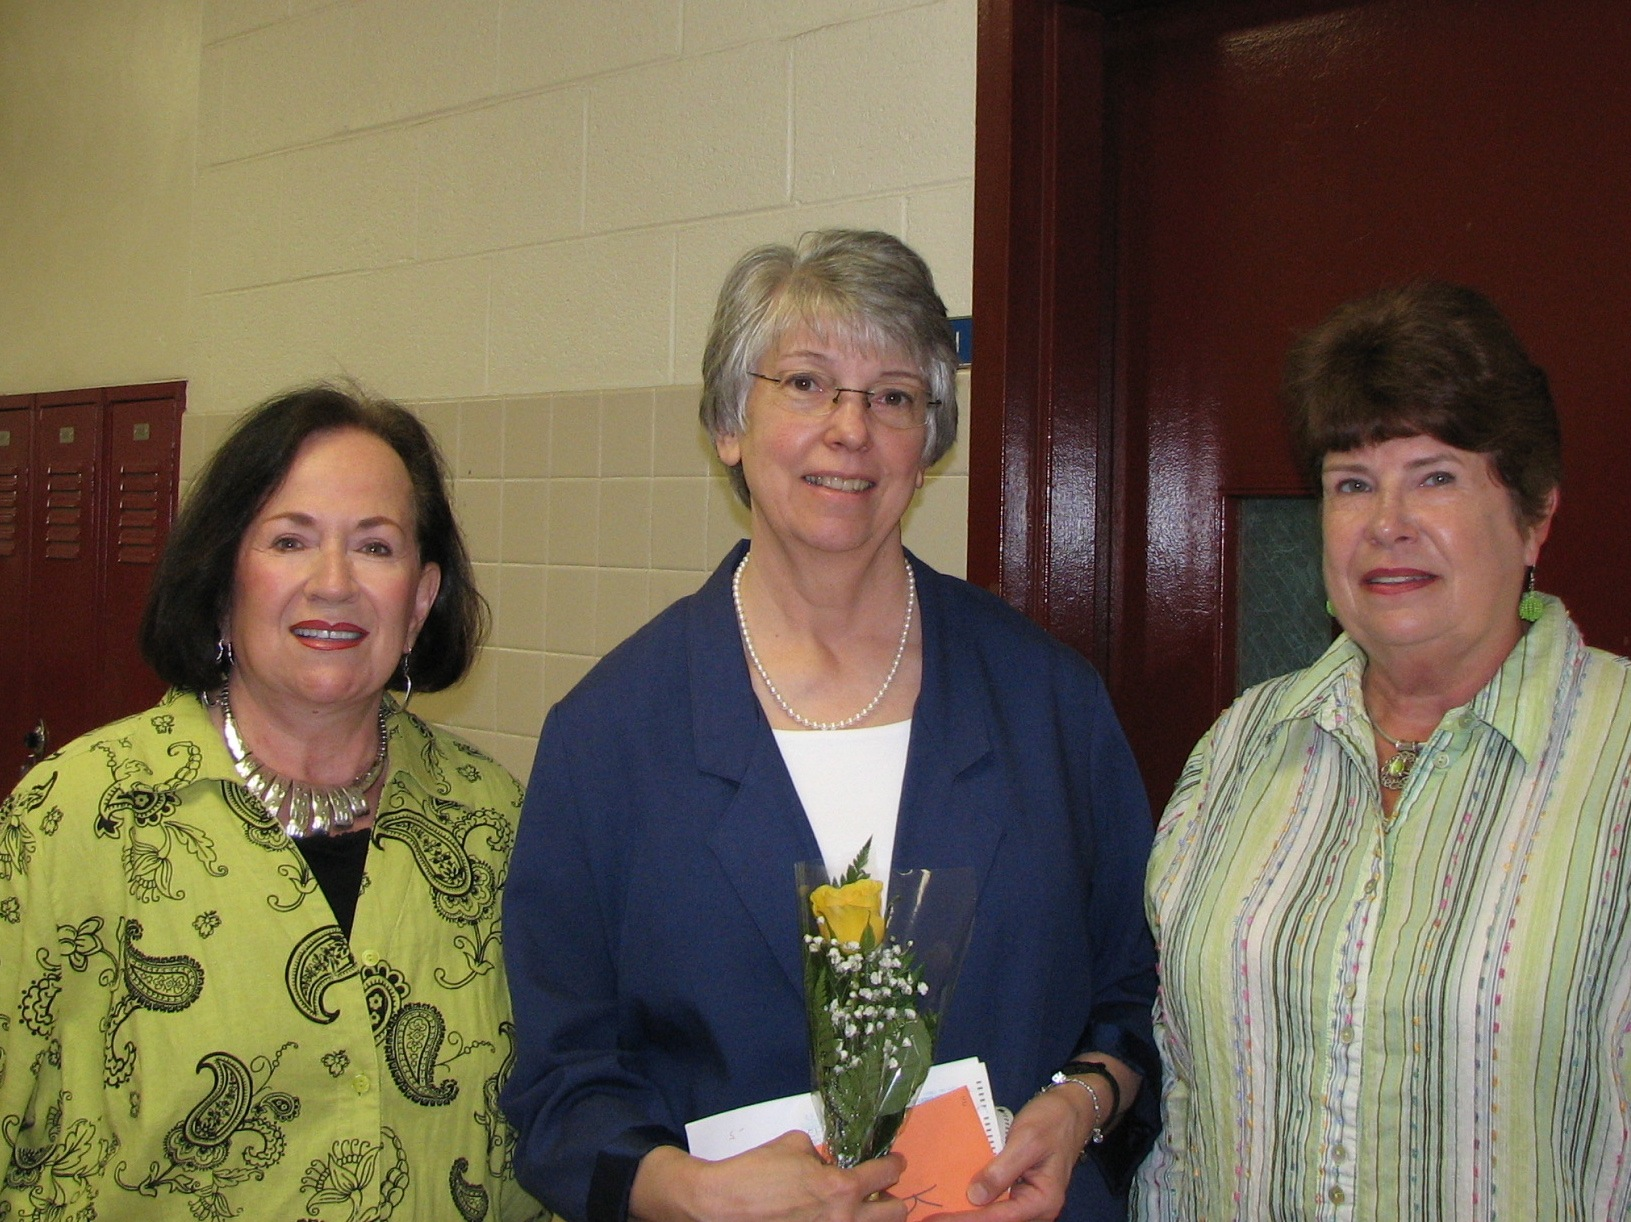 retiree-carolyn-griffith-pms-2012-with-pef-reps-judy-mccormick-and-ginny.jpg